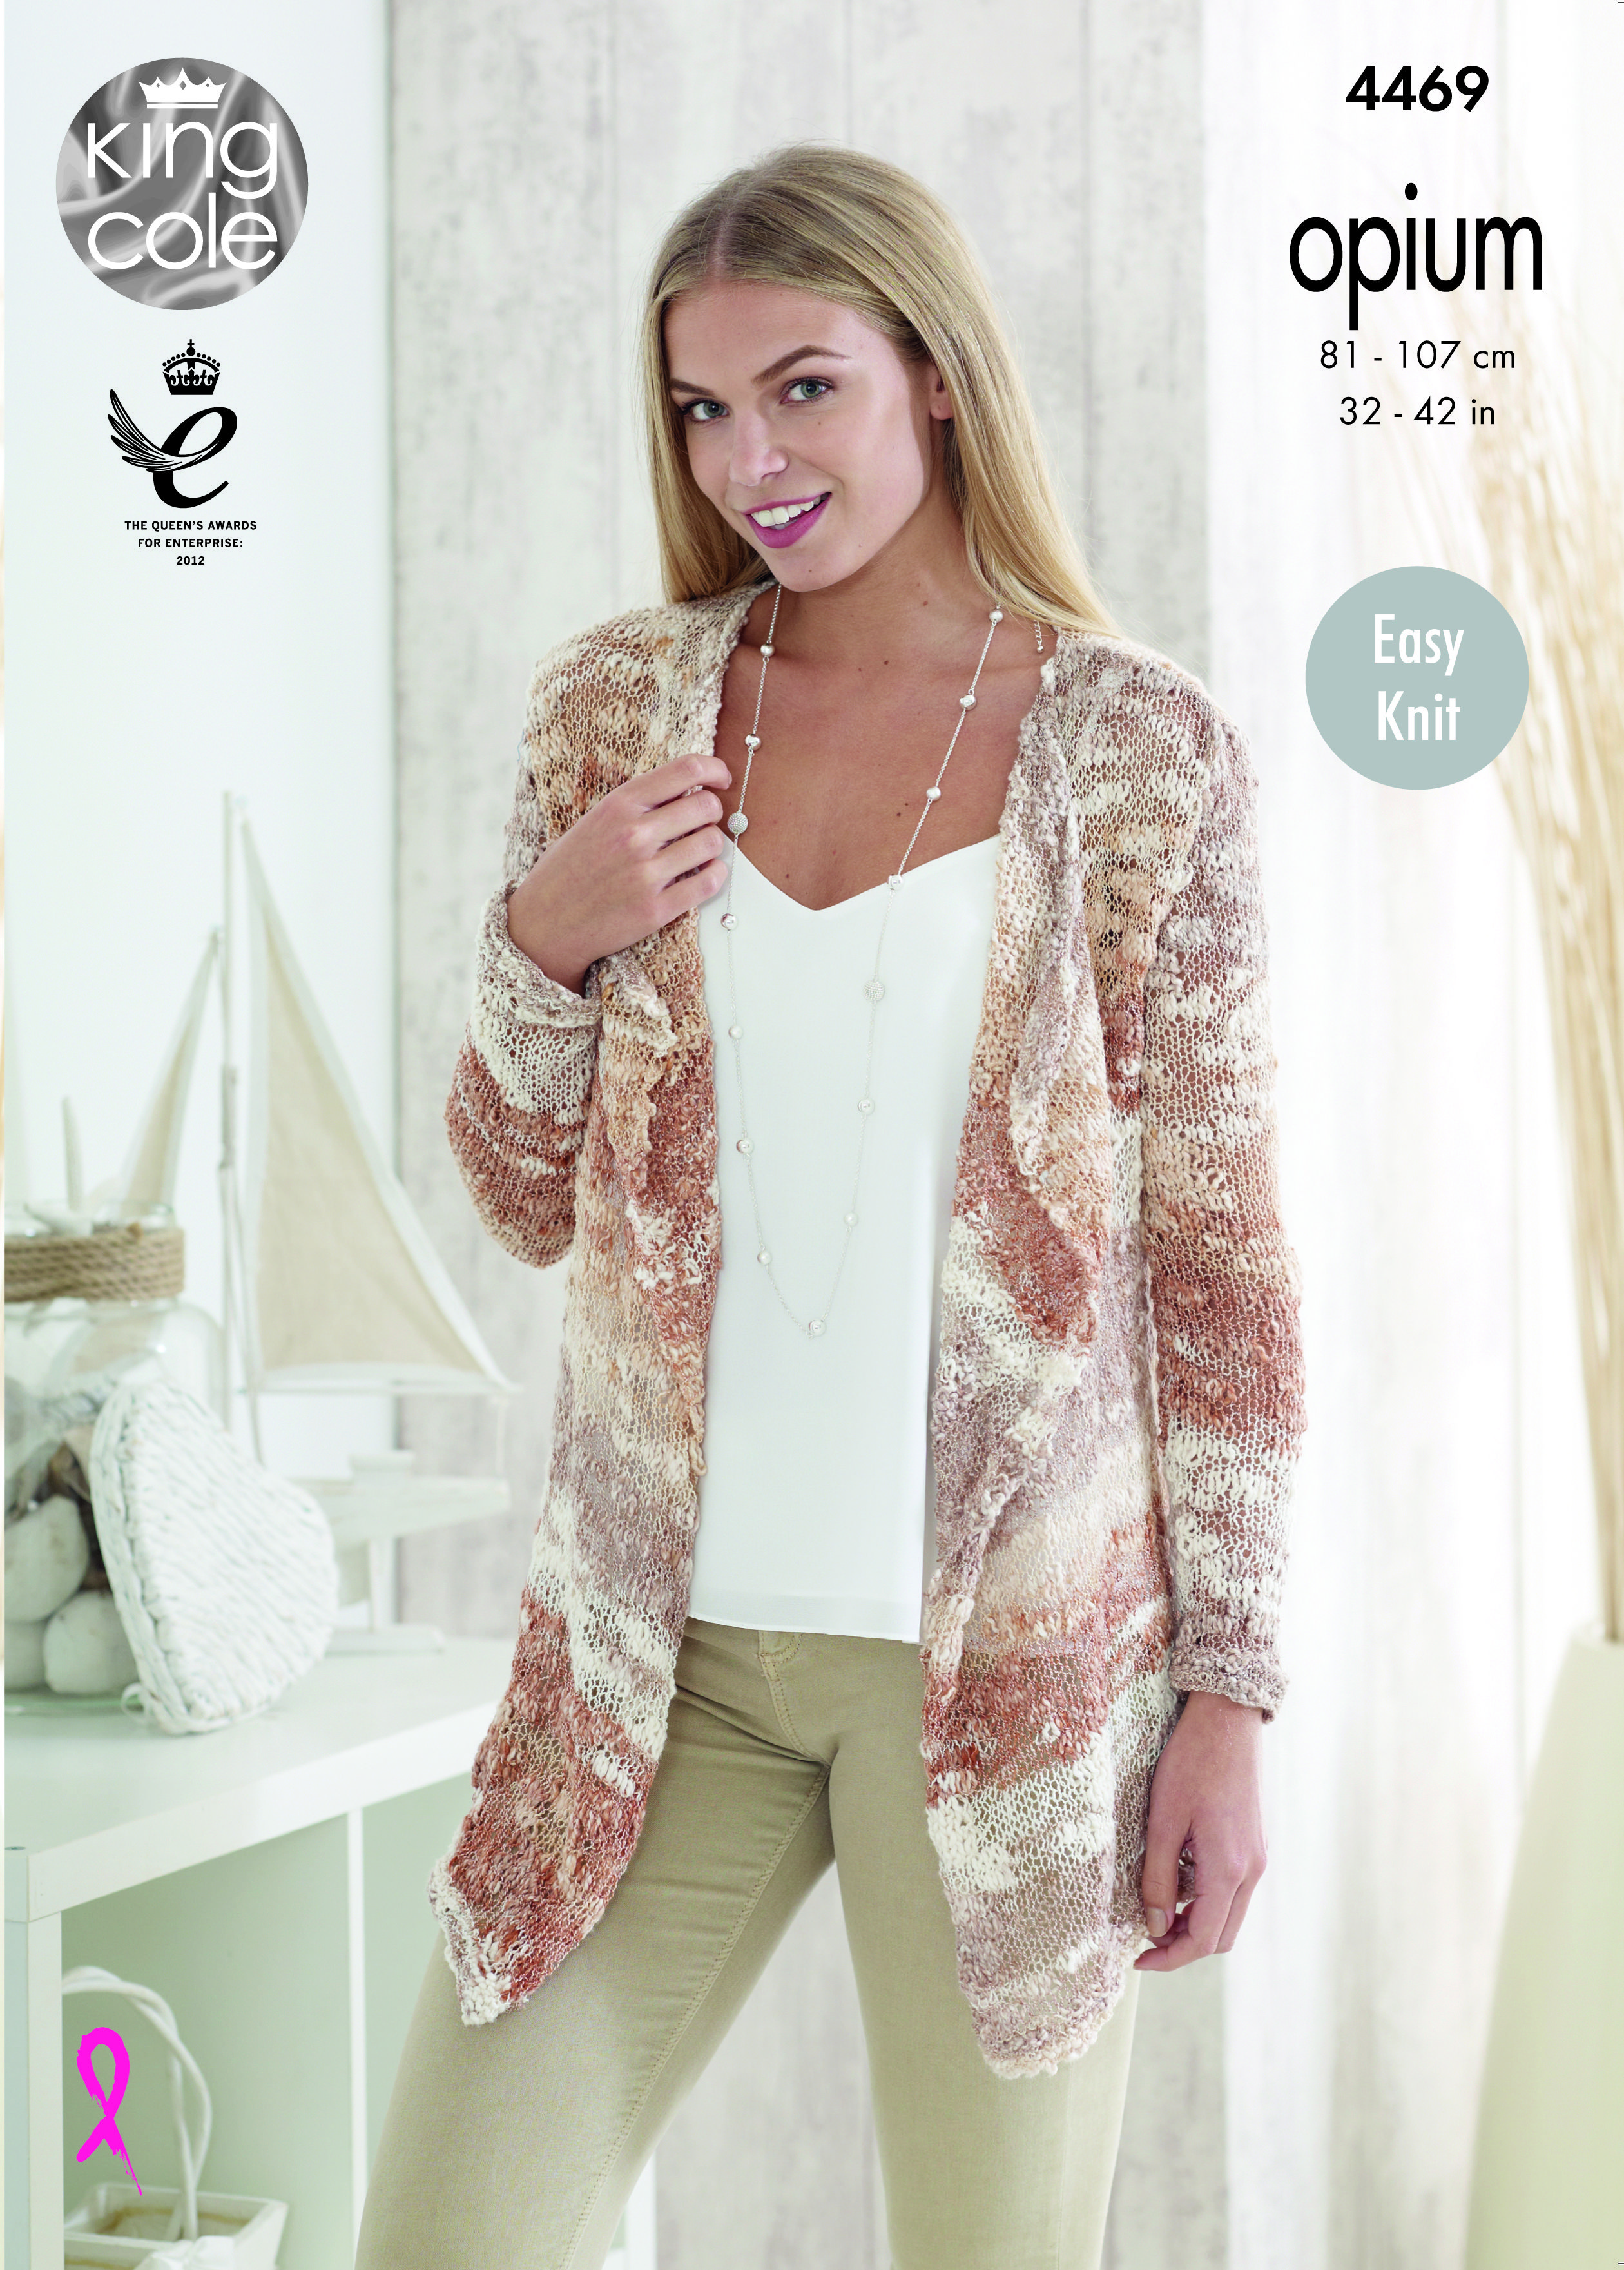 64b0d4281 Cardigan and Waistcoat in King Cole Opium and Opium Palette - 4469 -  Leaflet Knit Cardigan